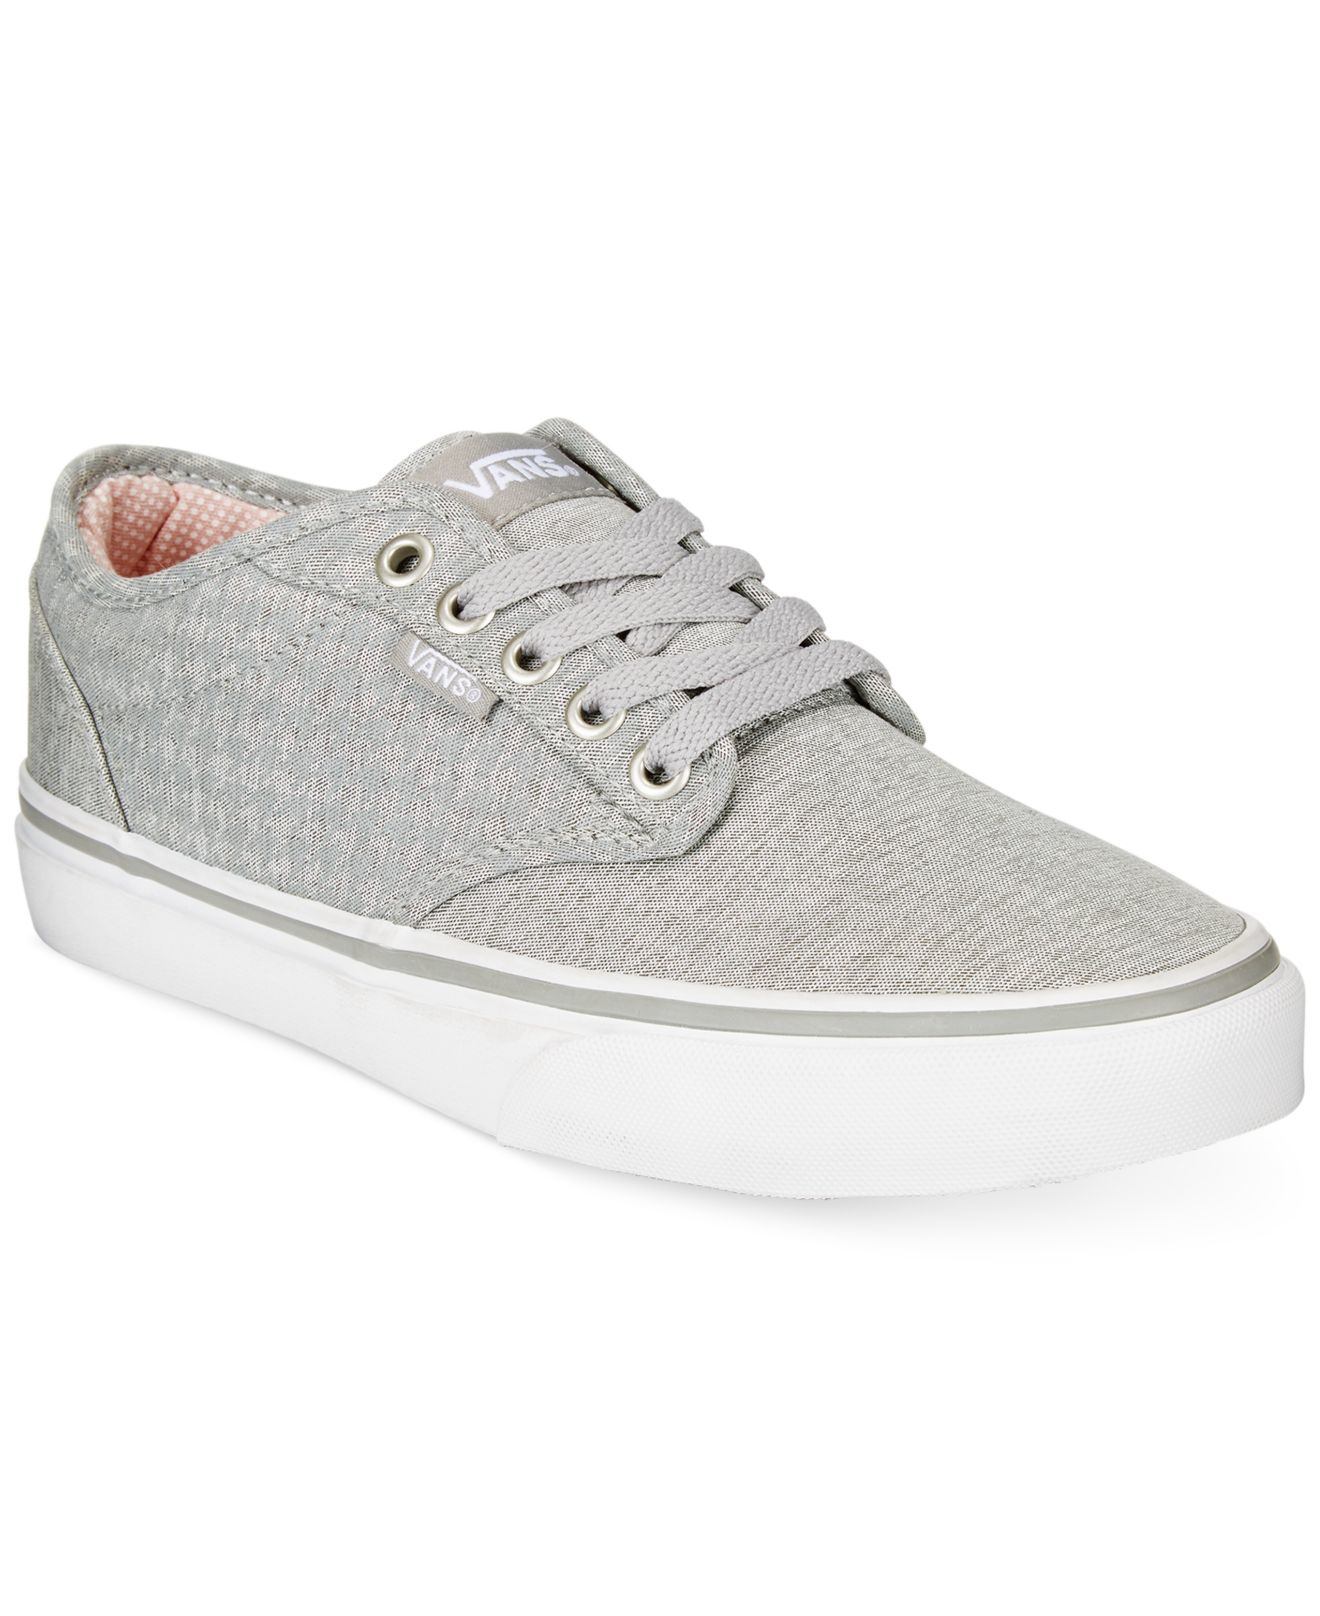 Lyst - Vans Women s Atwood Lace-up Sneakers in Gray 29e1610ef